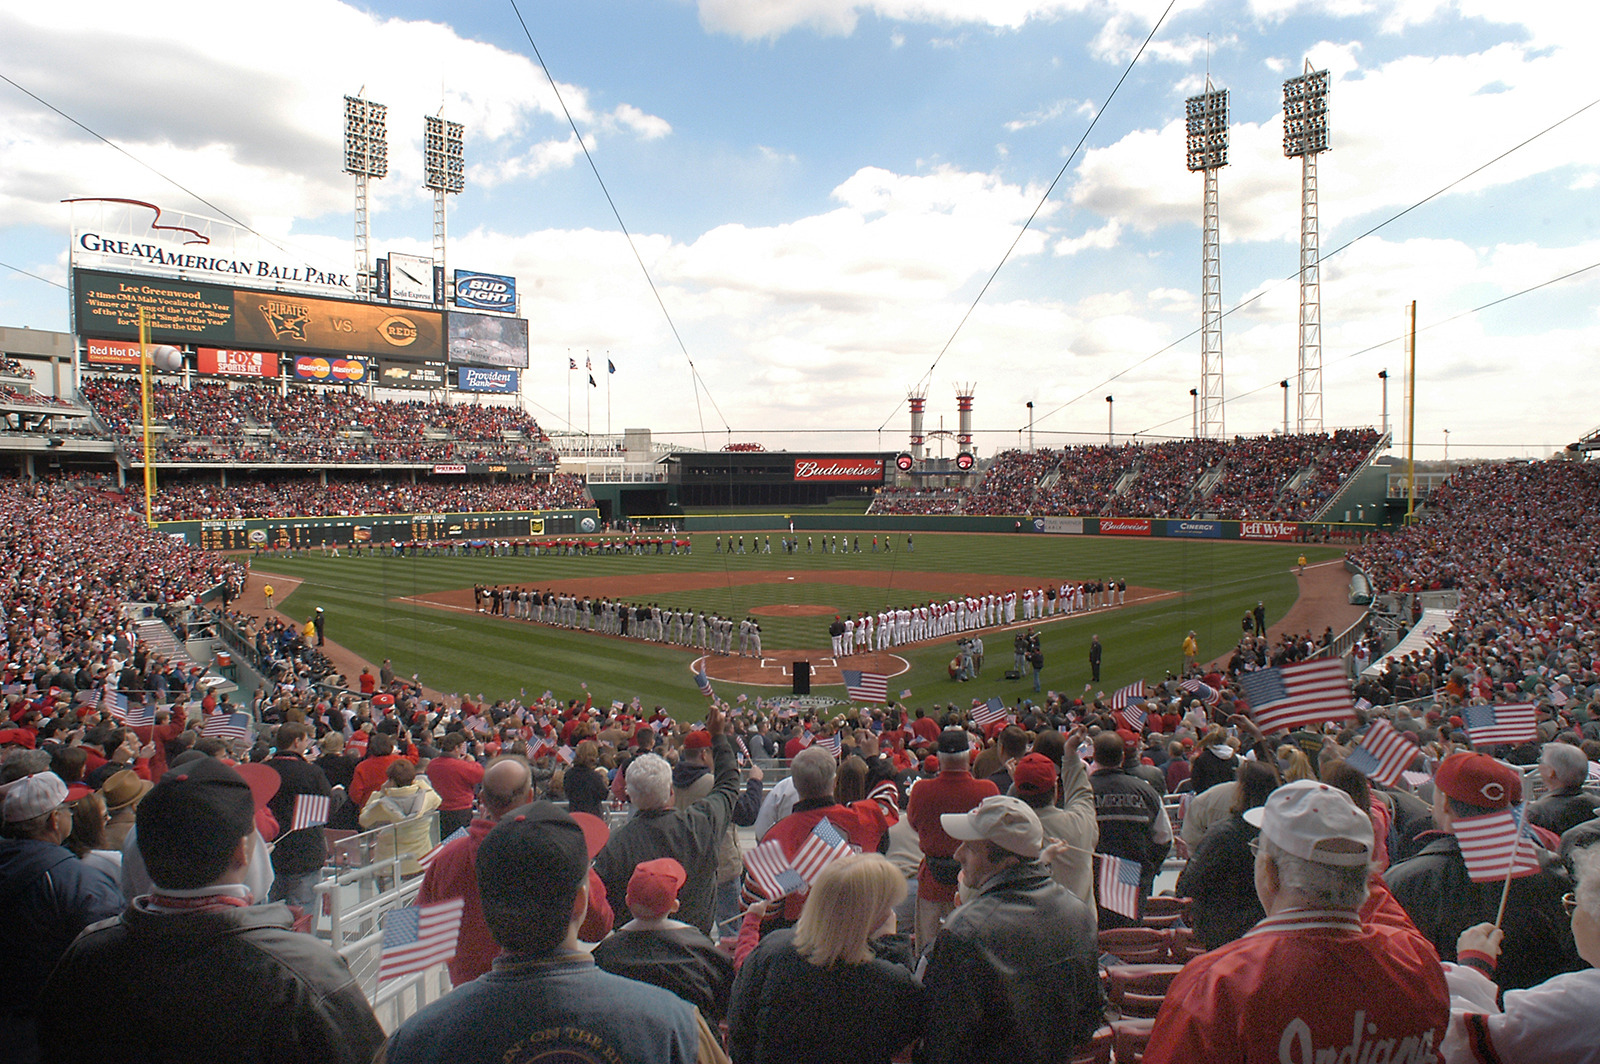 Great American Ball Park opens